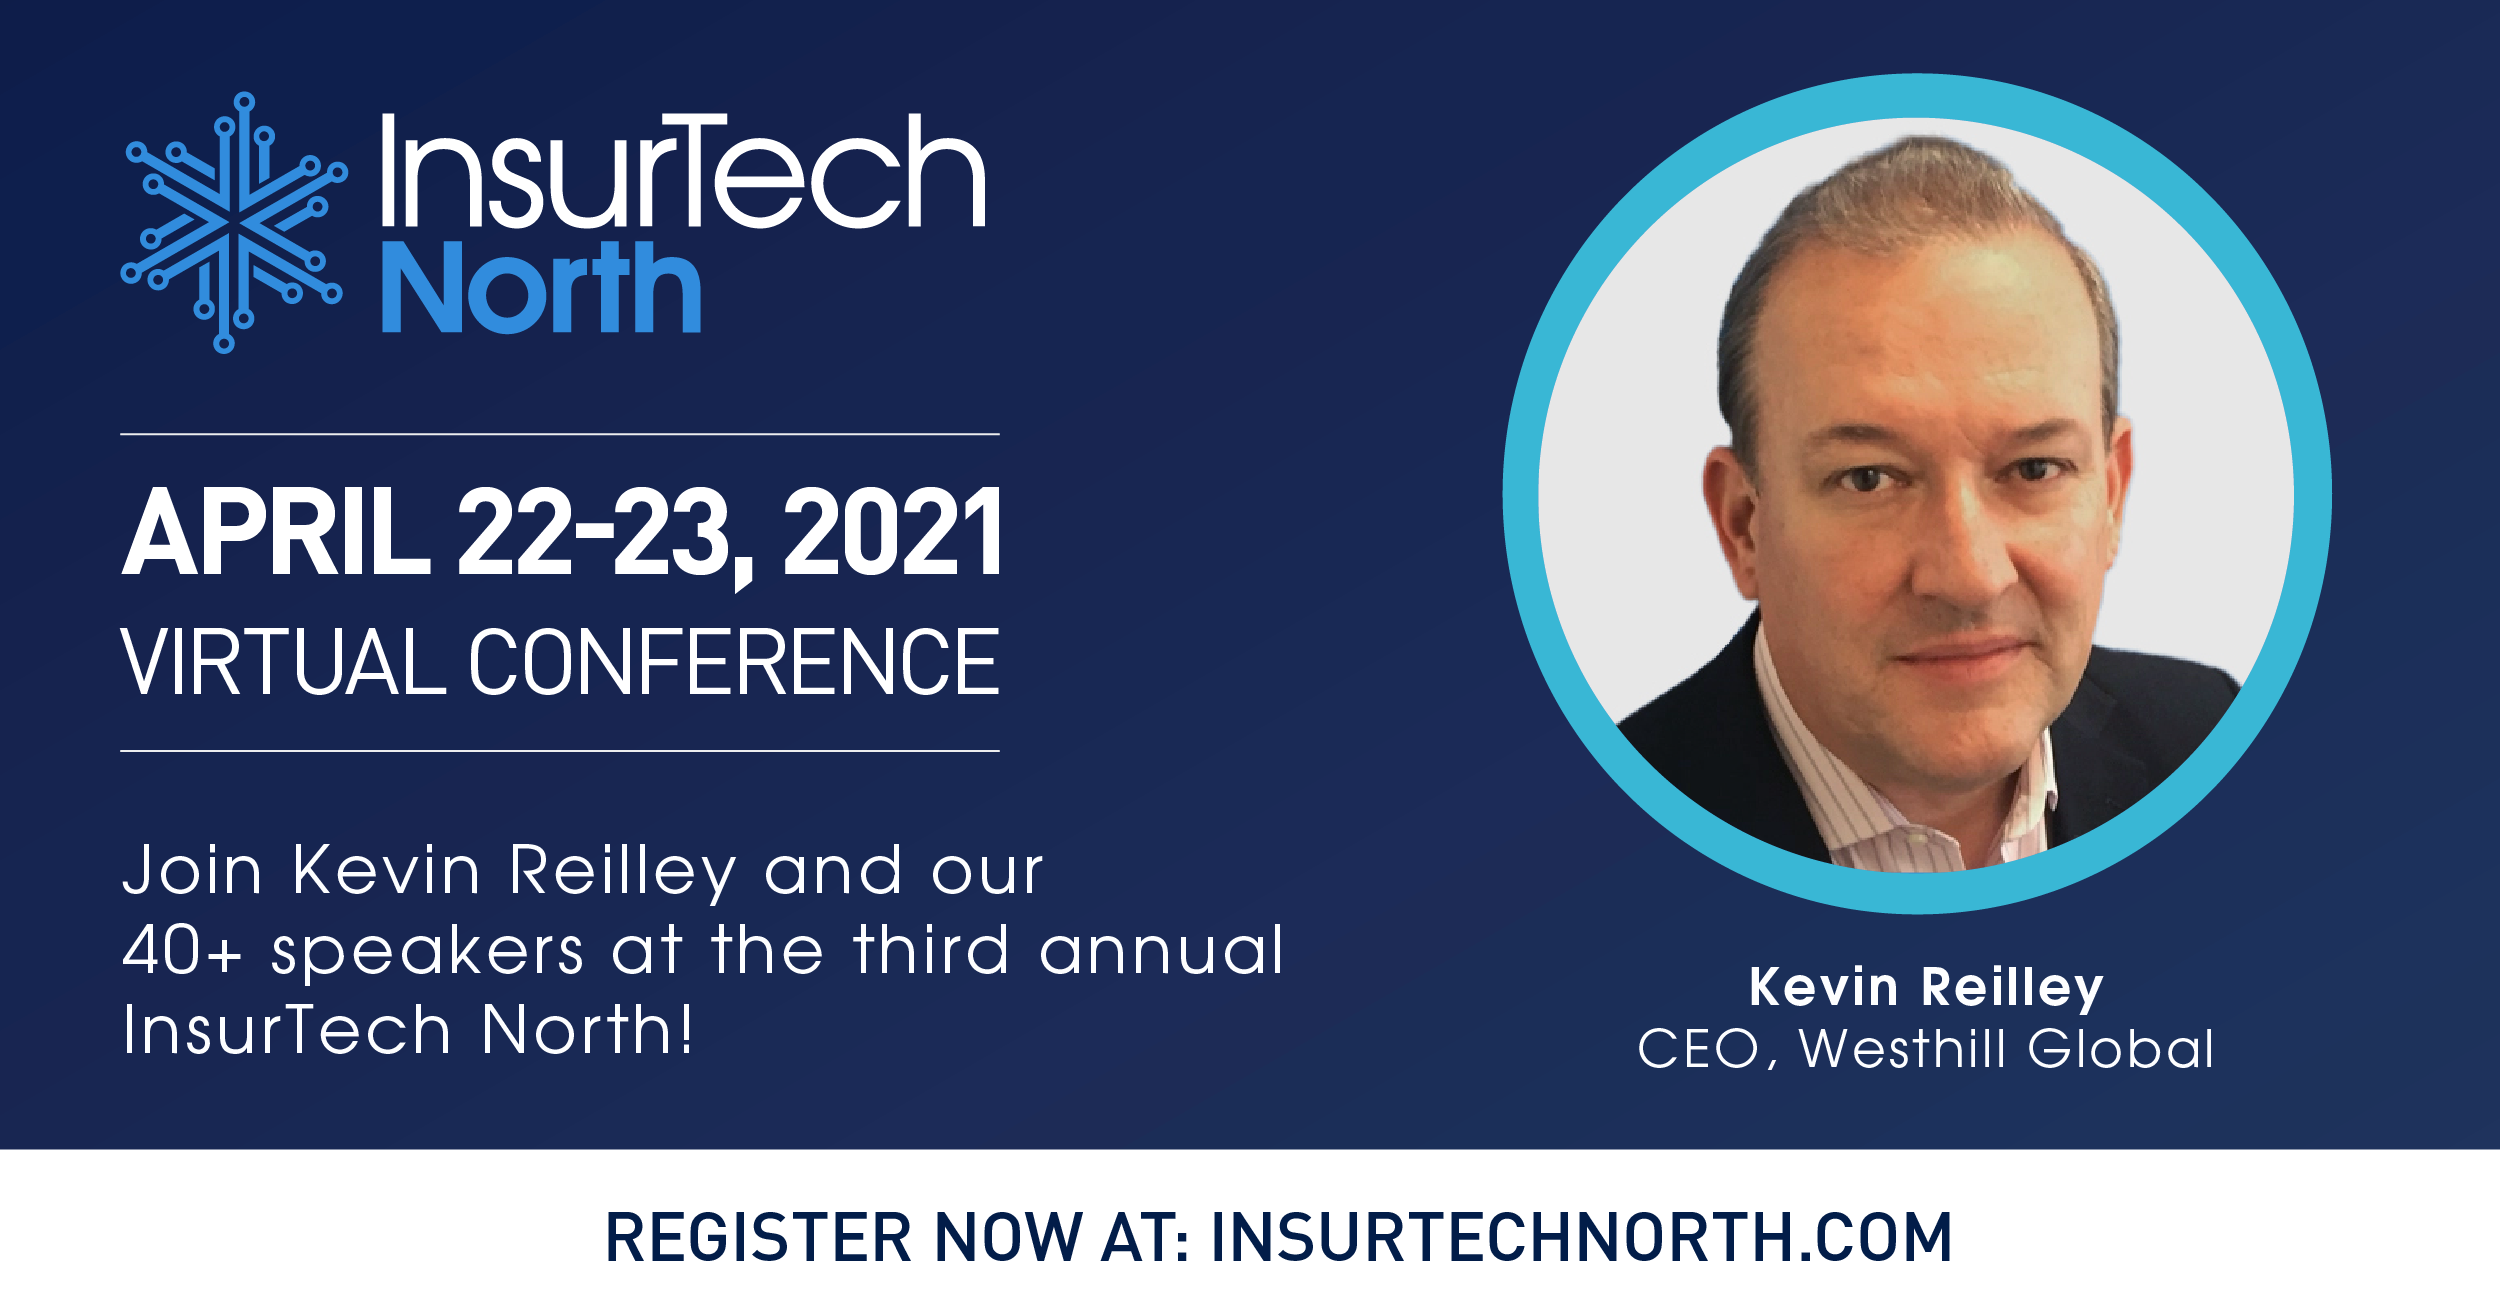 Kevin Reilley, CEO of Westhill, joins the talented group of speakers at InsurTech North.